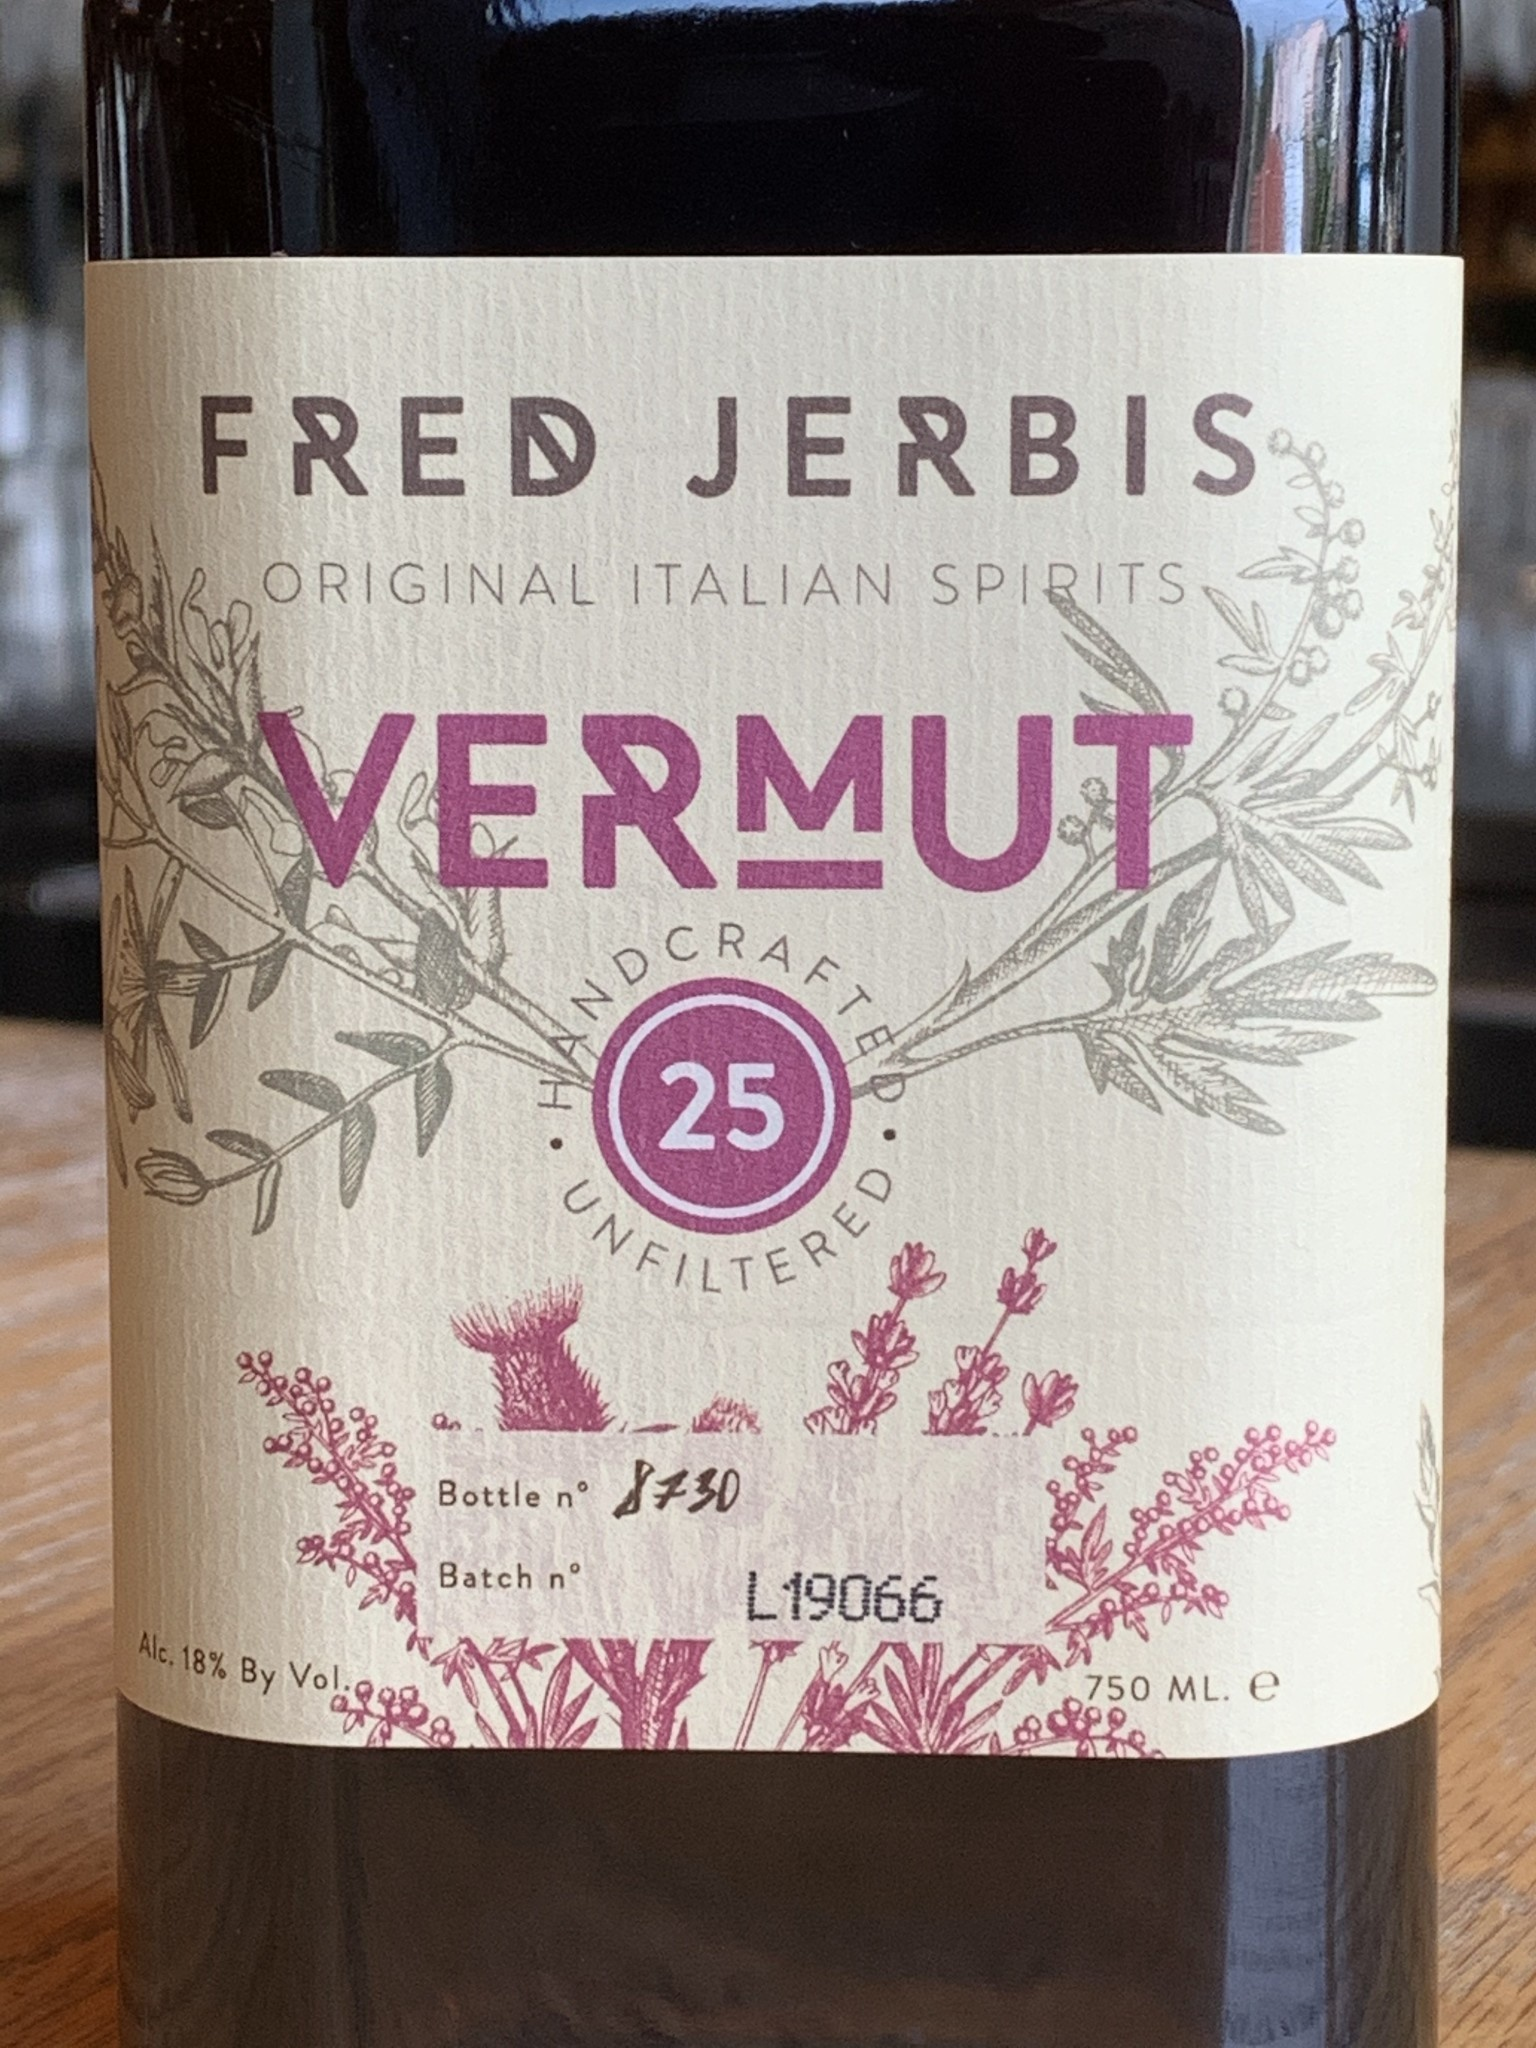 Fred Jerbis Fred Jerbis Vermouth 750ml